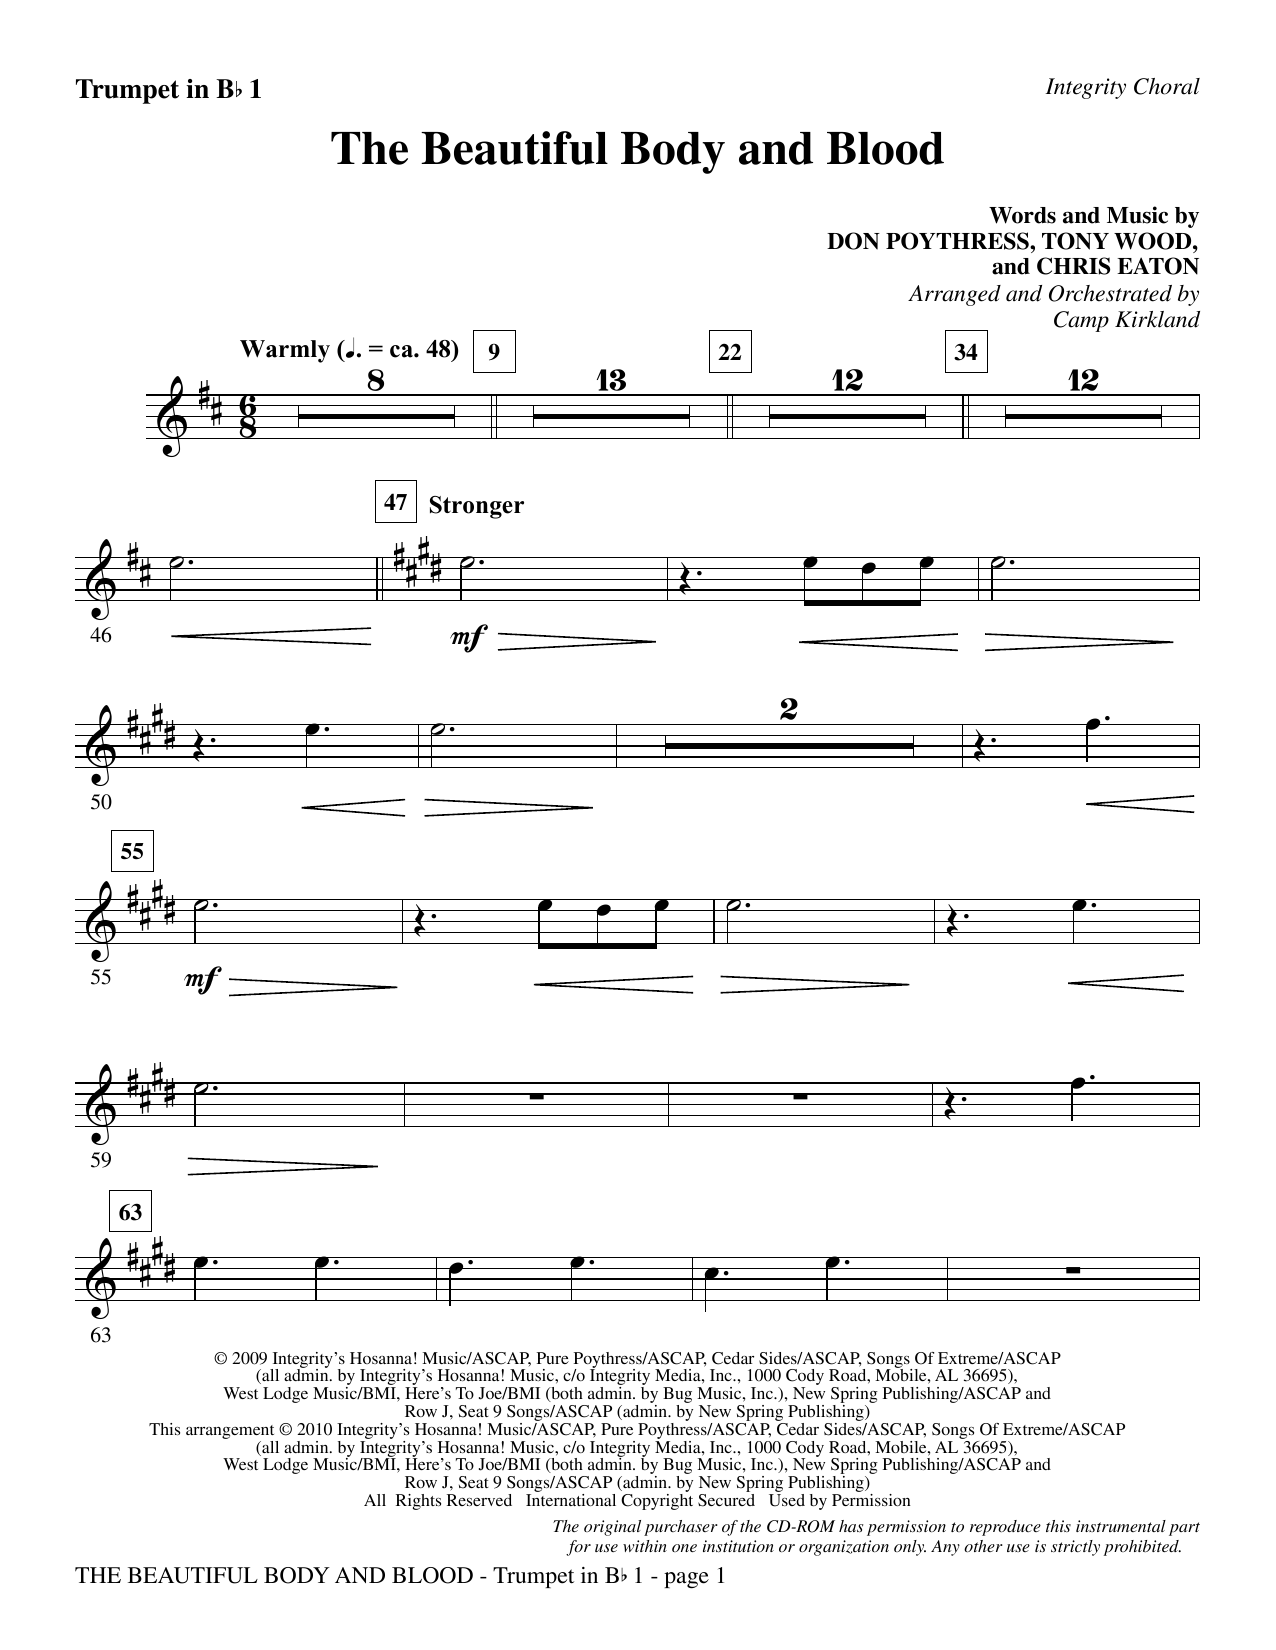 The Beautiful Body And Blood - Trumpet 1 sheet music